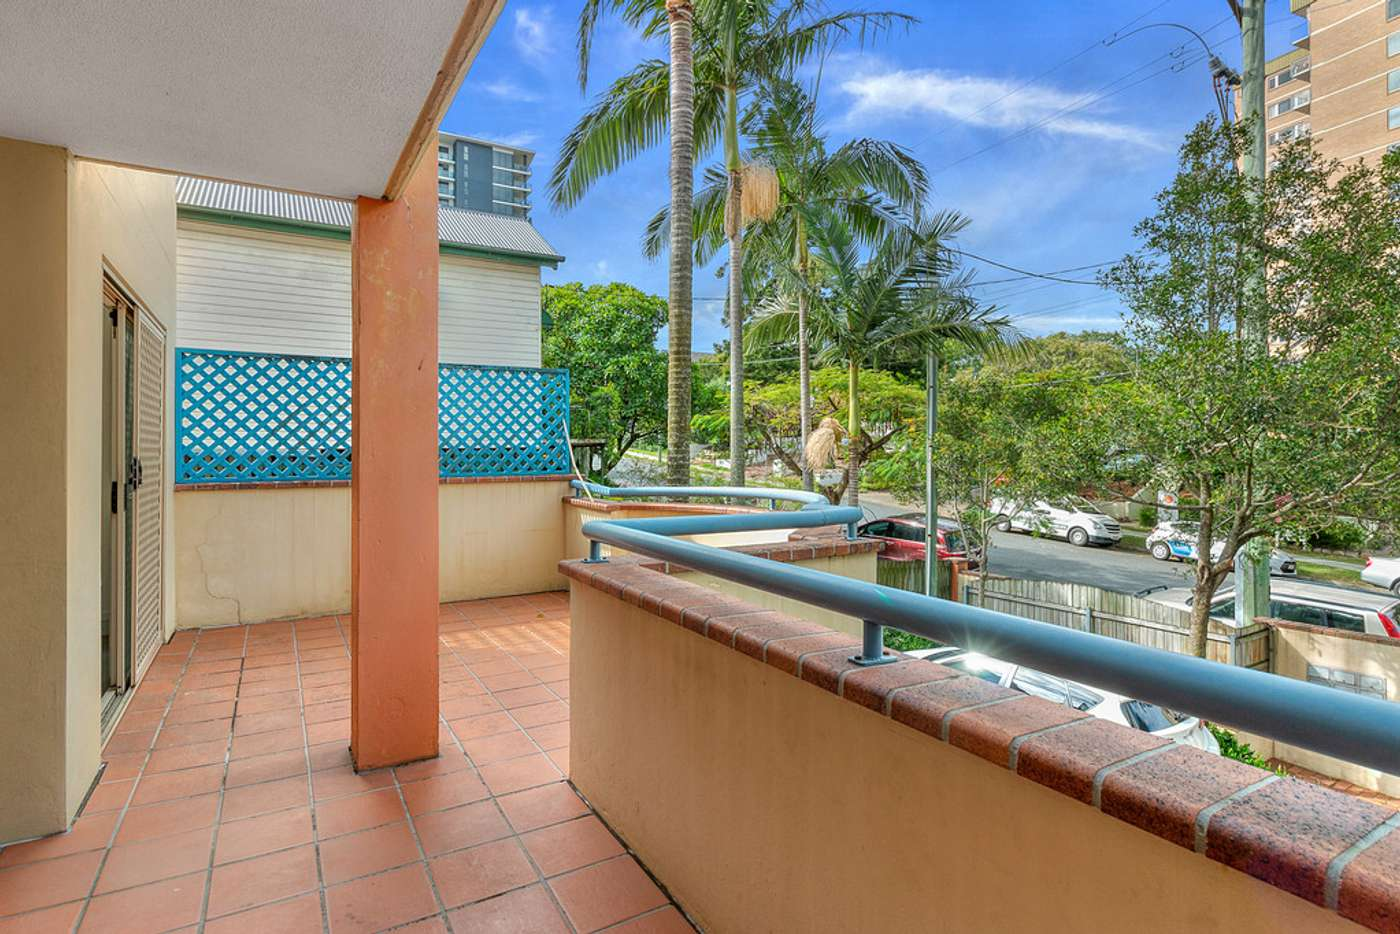 Seventh view of Homely apartment listing, 15/31 Glen Road, Toowong QLD 4066